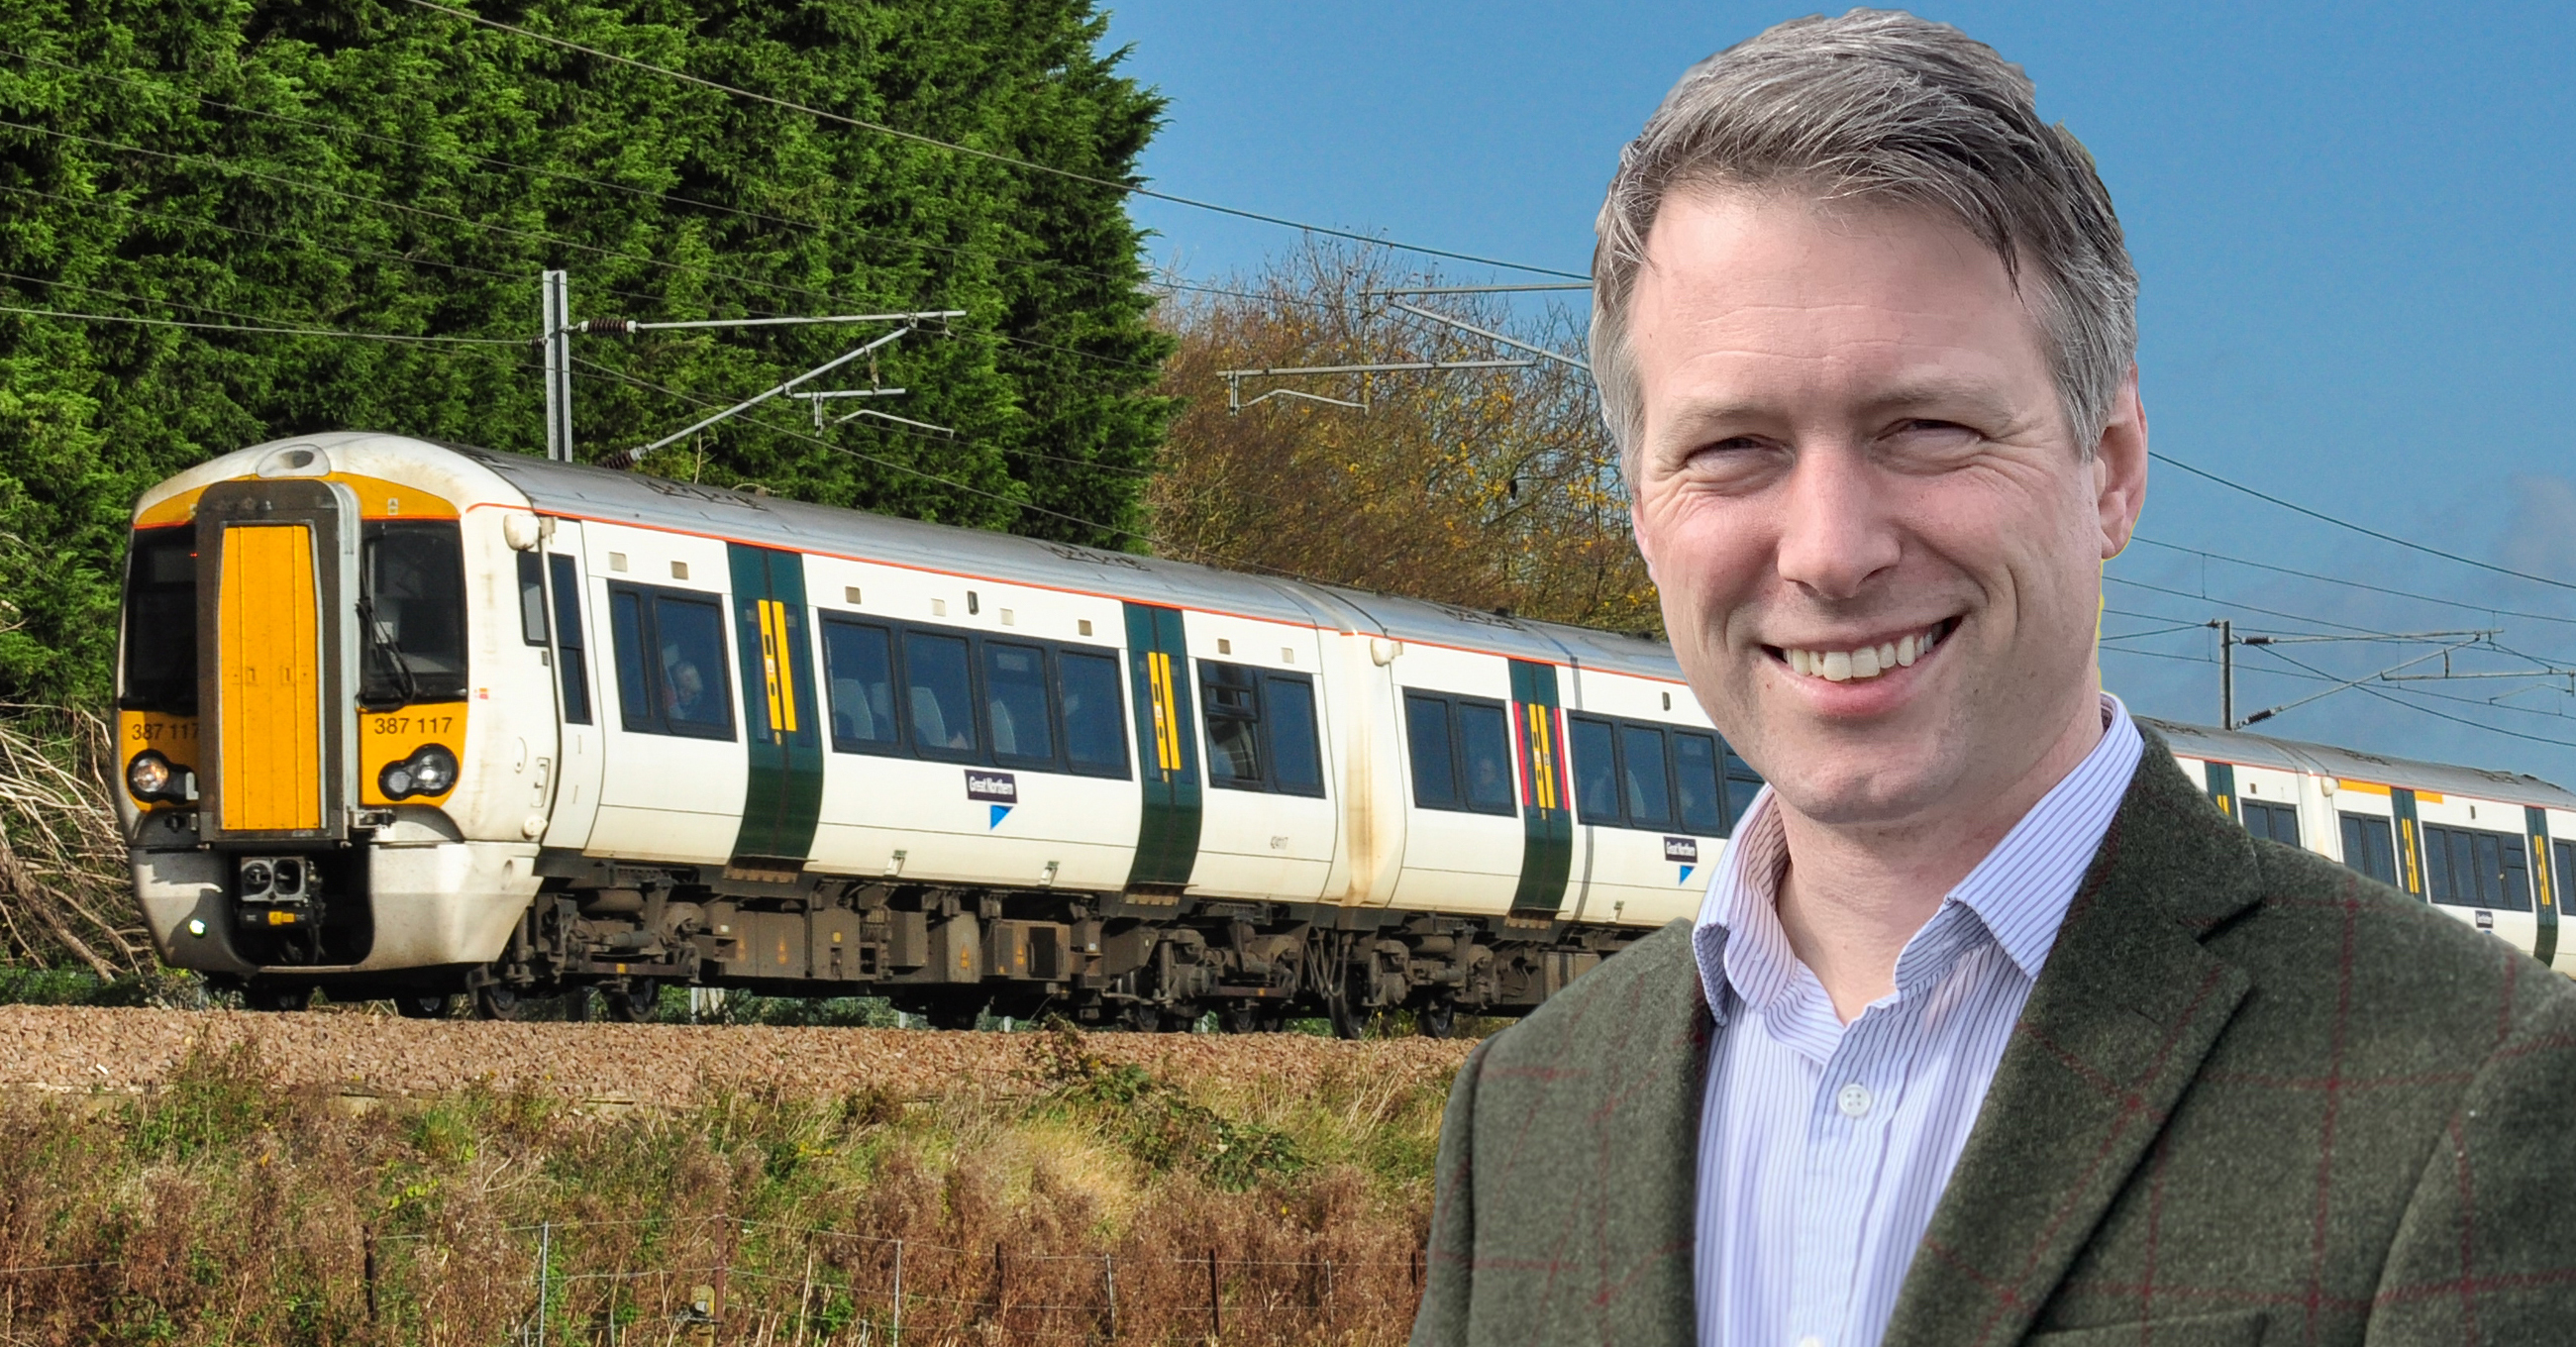 Aidan Van de Weyer condemns failure of Cambs Conservatives to support electrification of East West Rail